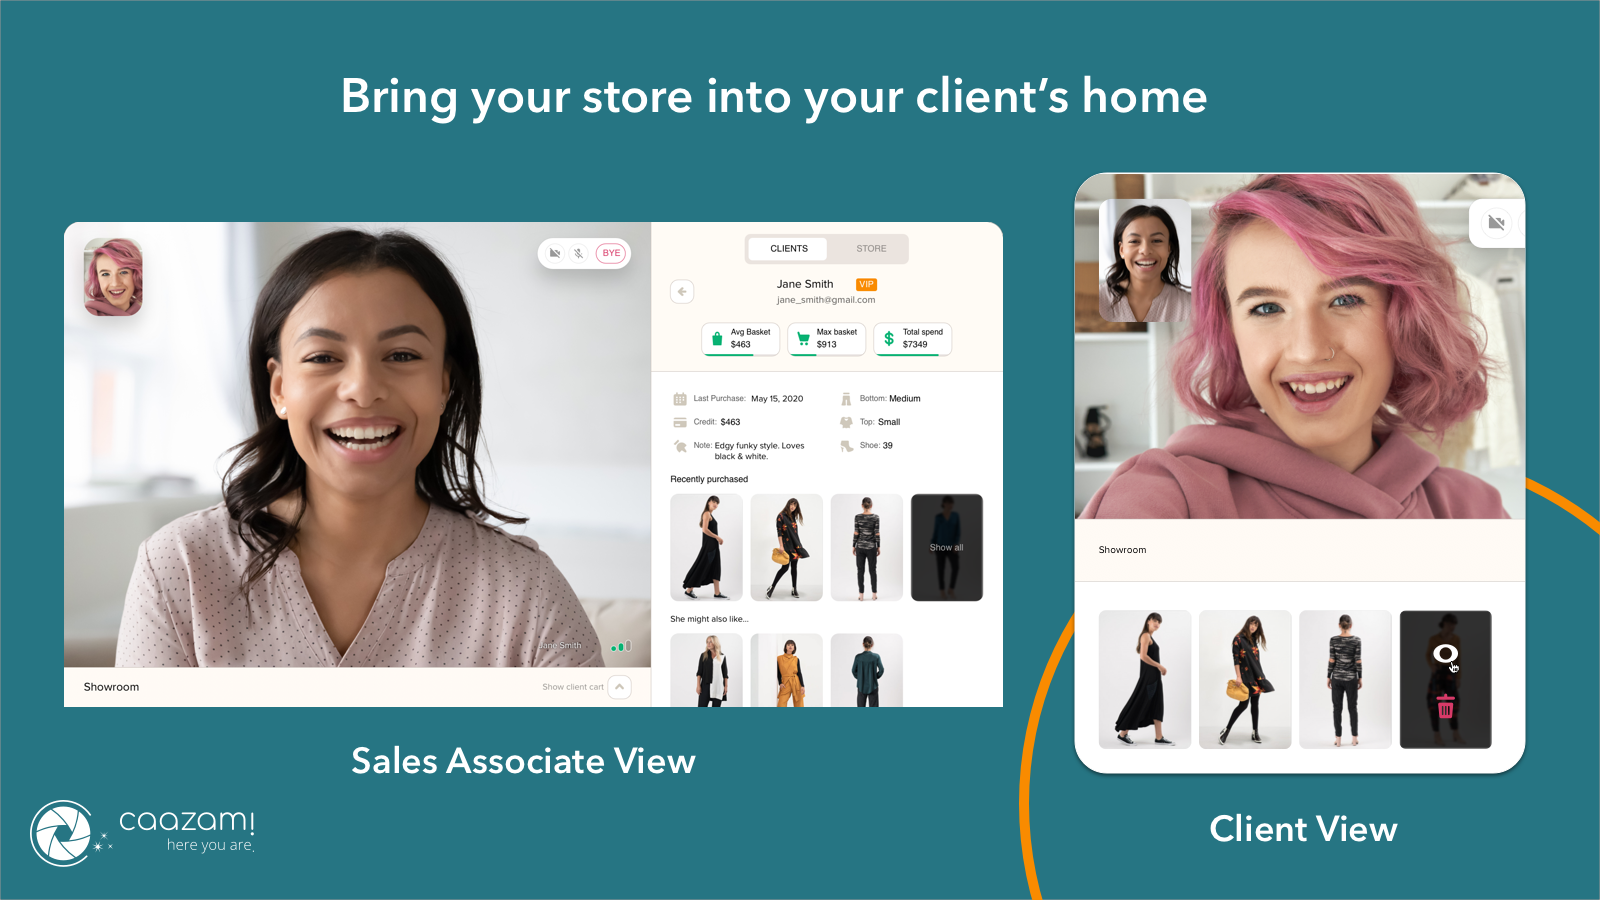 Caazam! - Bring Your Store into Your Client's Home